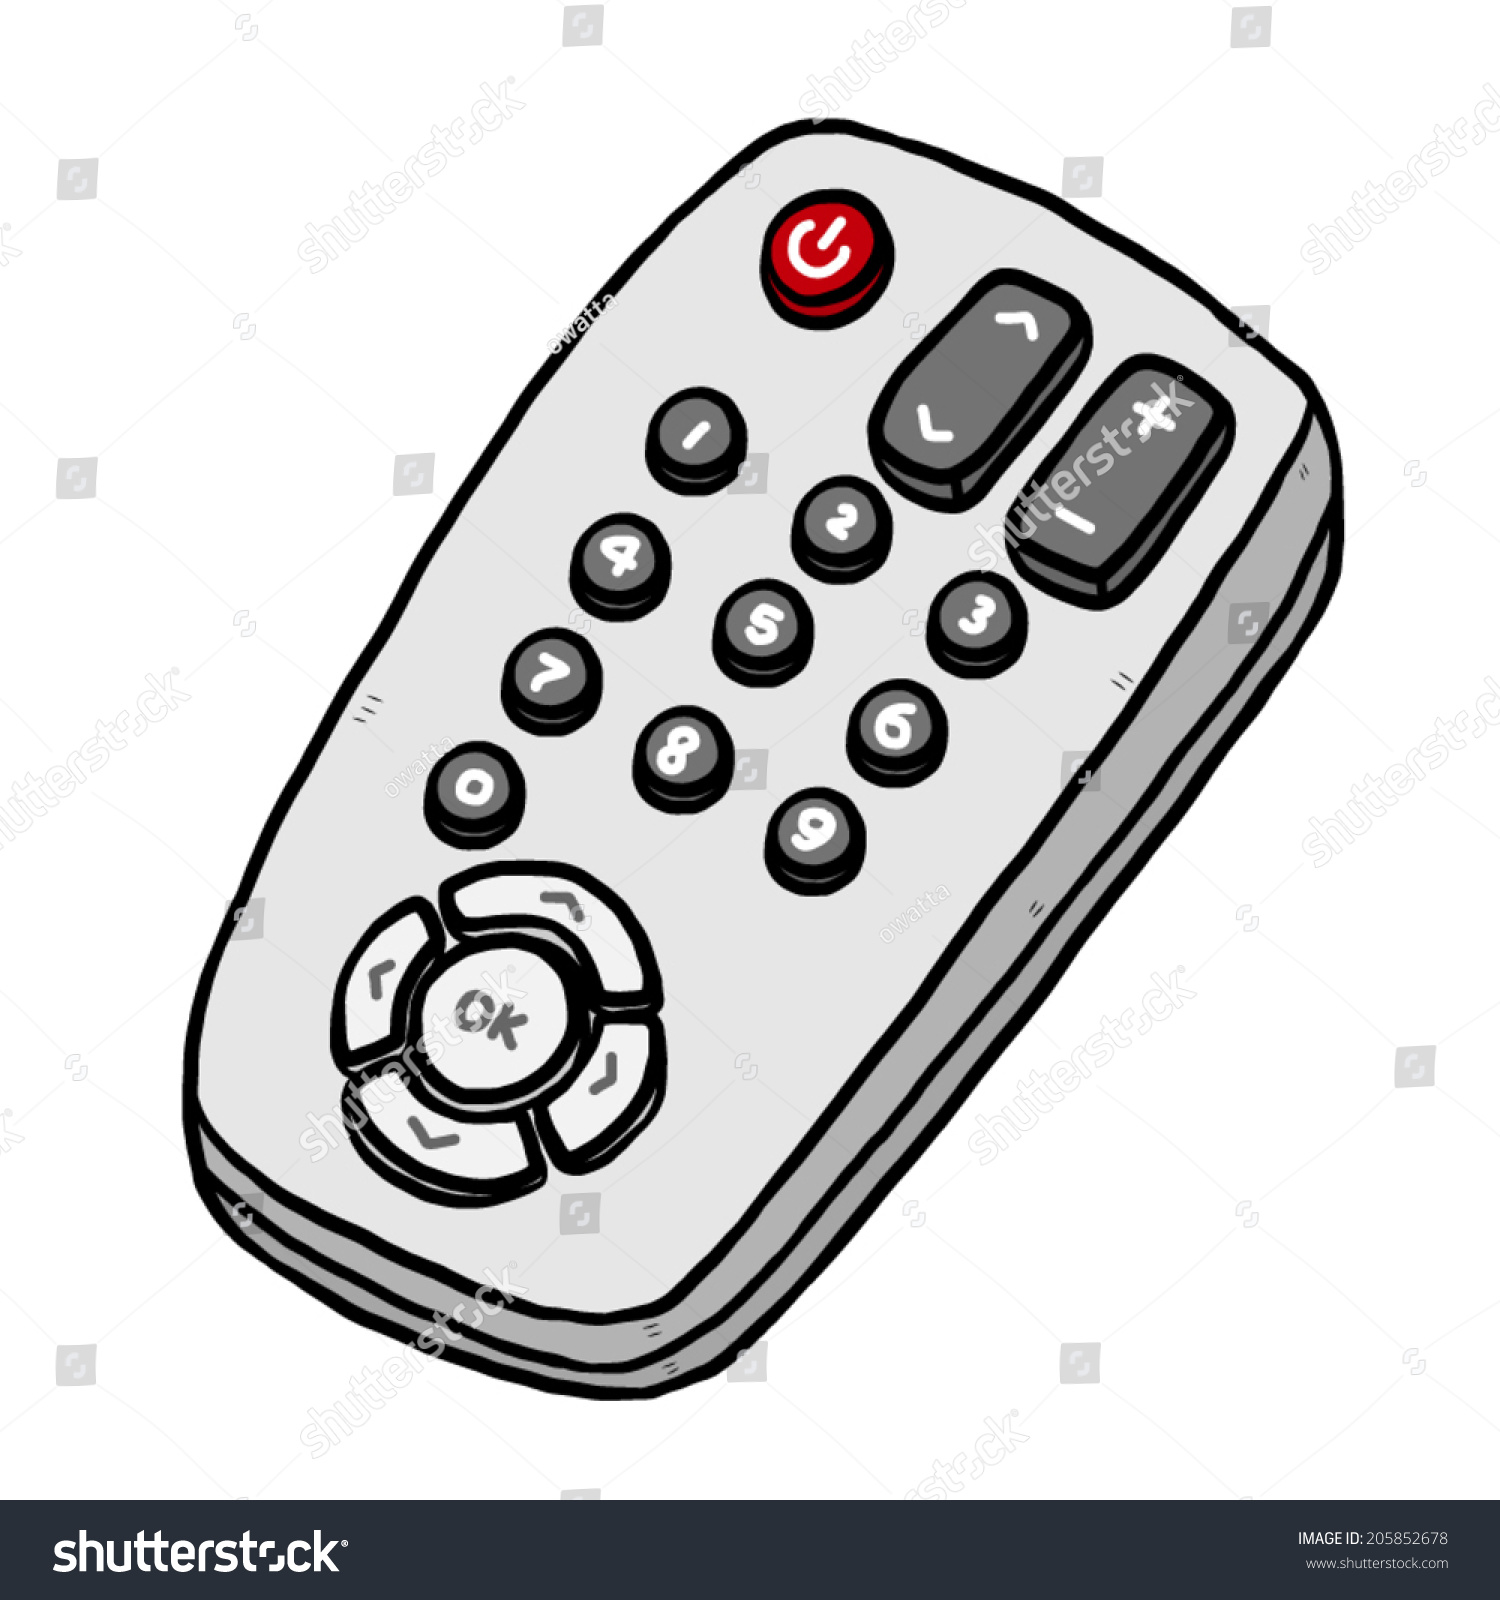 tv remote cartoon vector and illustration hand drawn